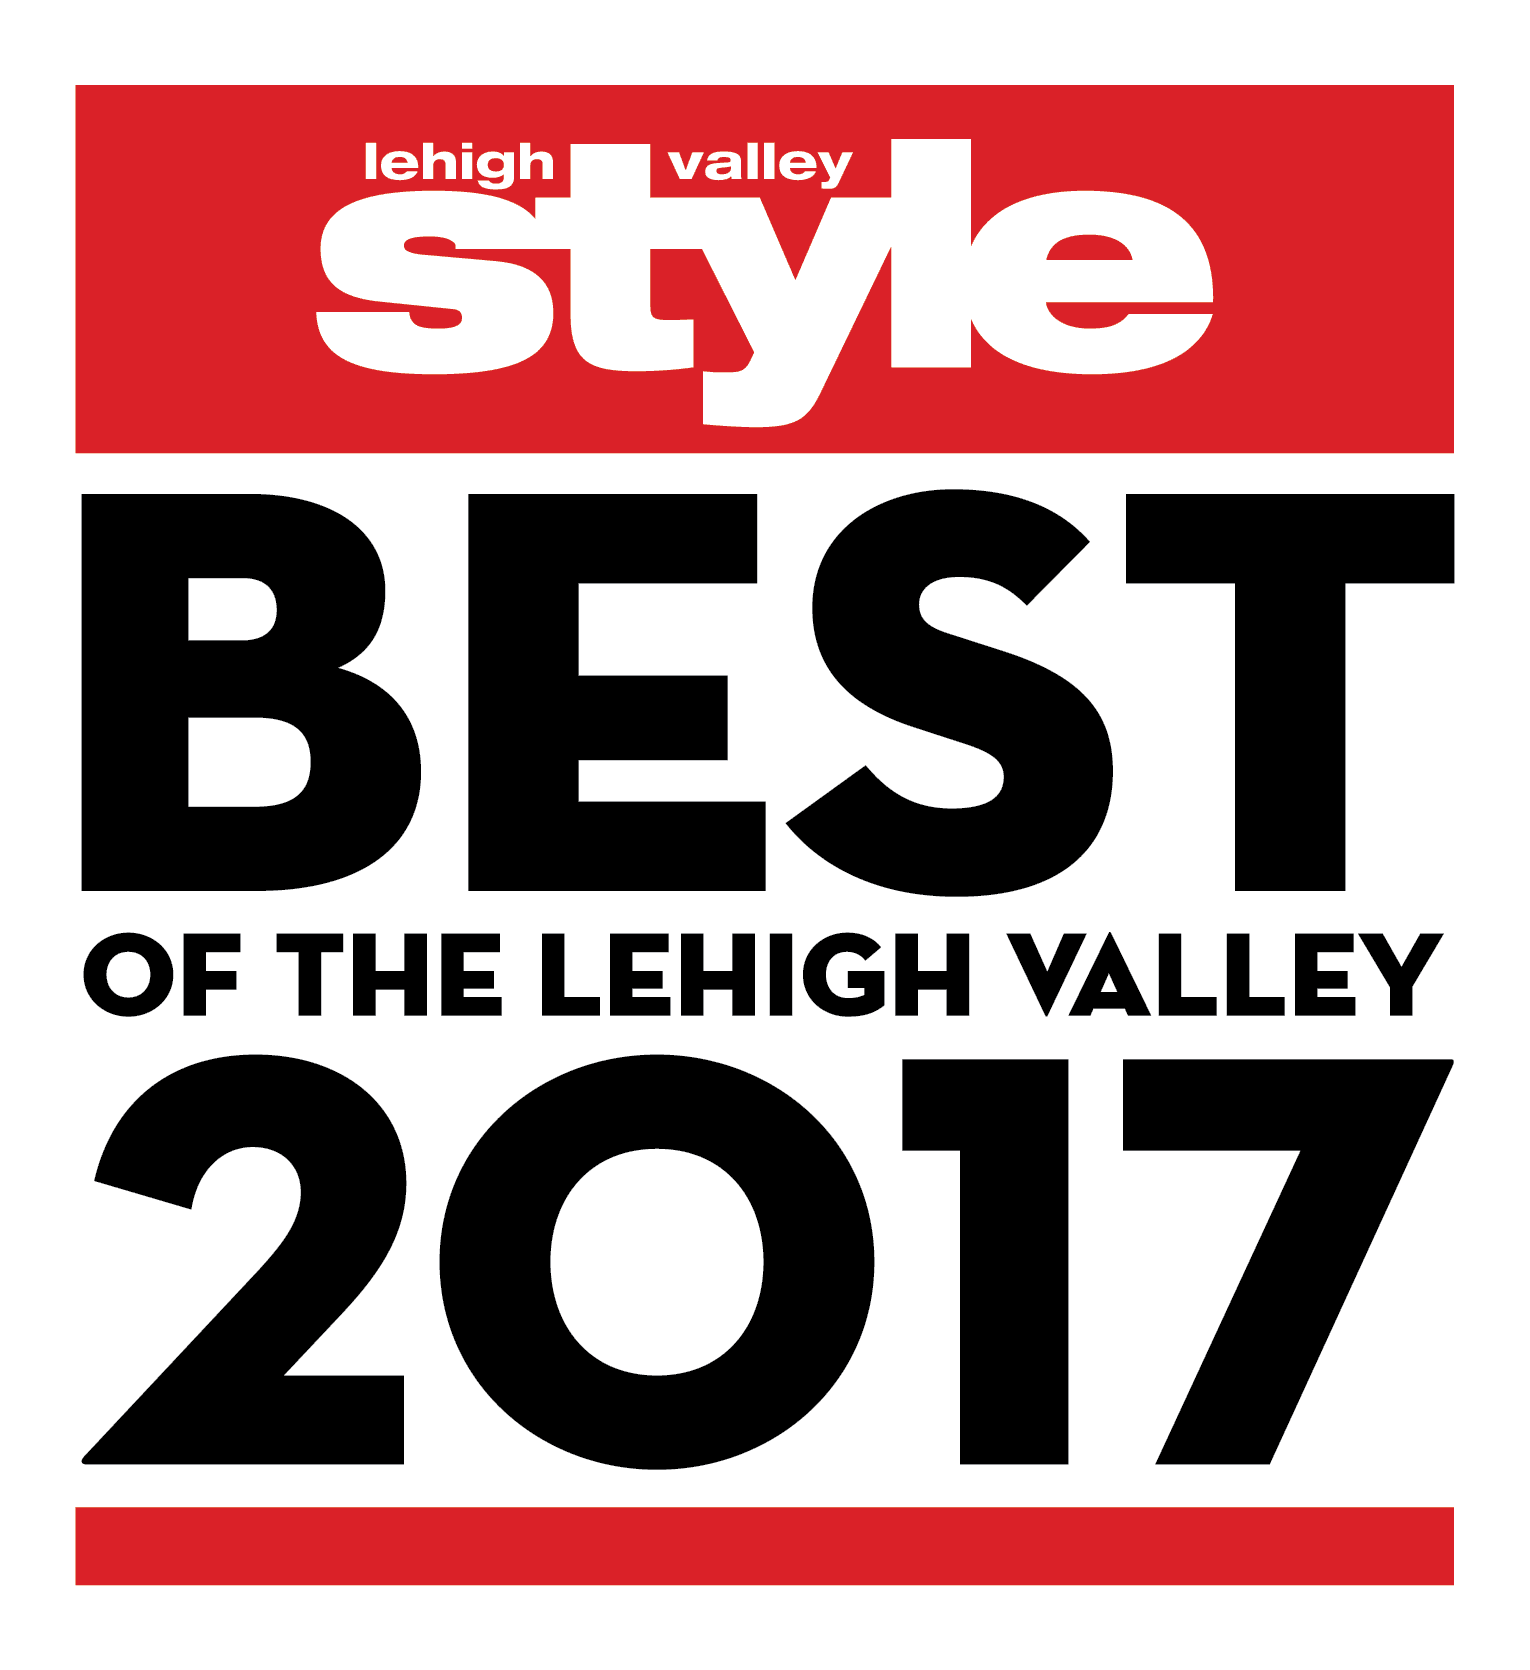 LeHigh Valley Style - Best of the LeHigh Valley 2017 Logo - Dog Boarding Services